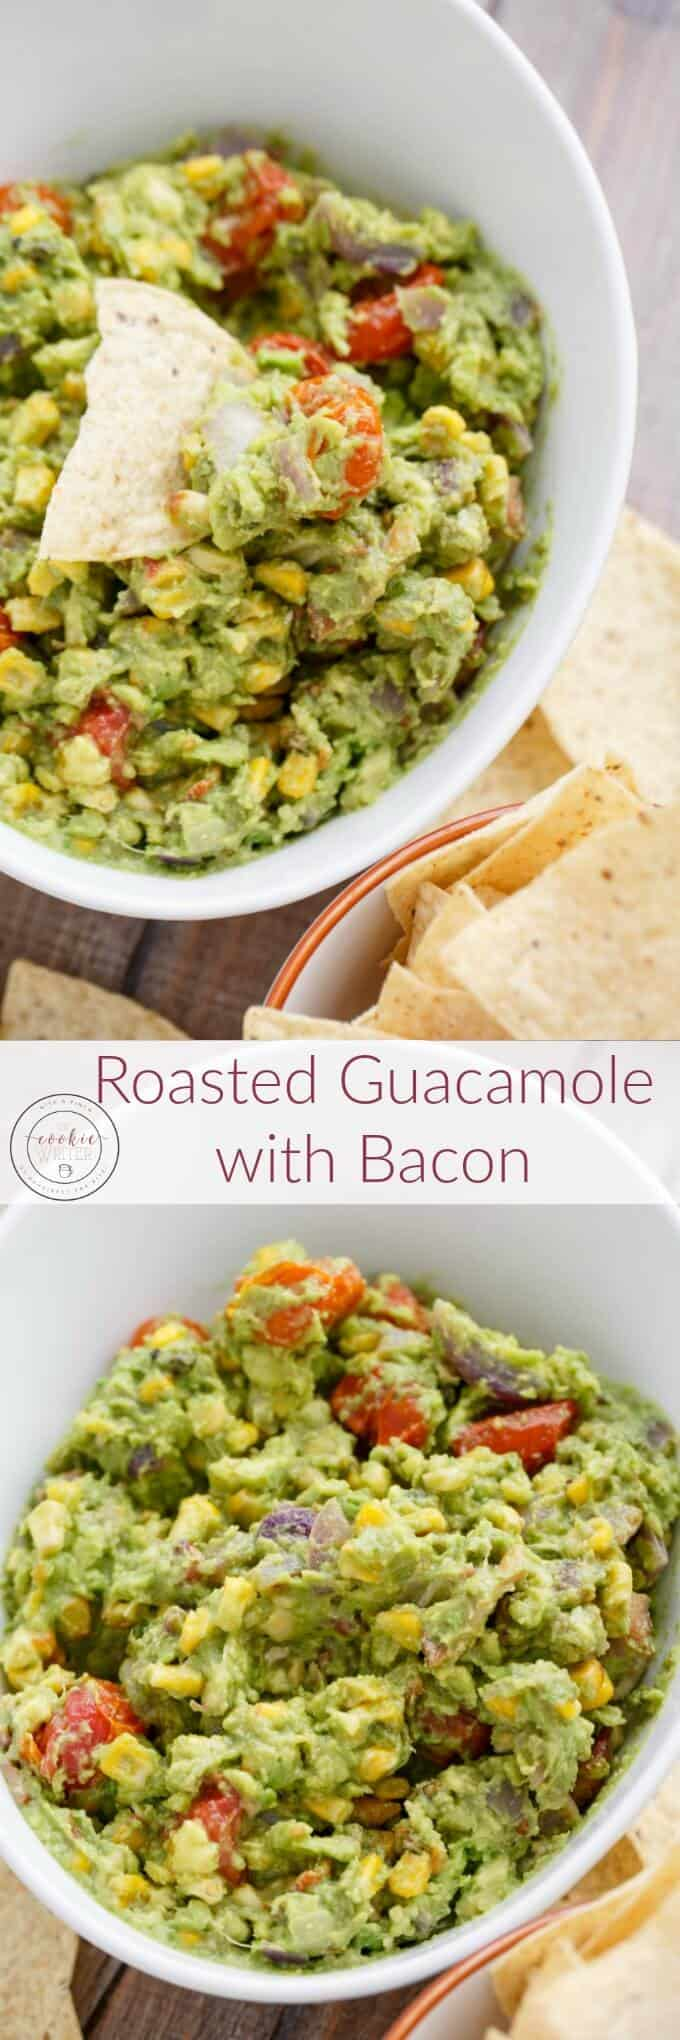 Roasted Guacamole with Bacon - The Cookie Writer